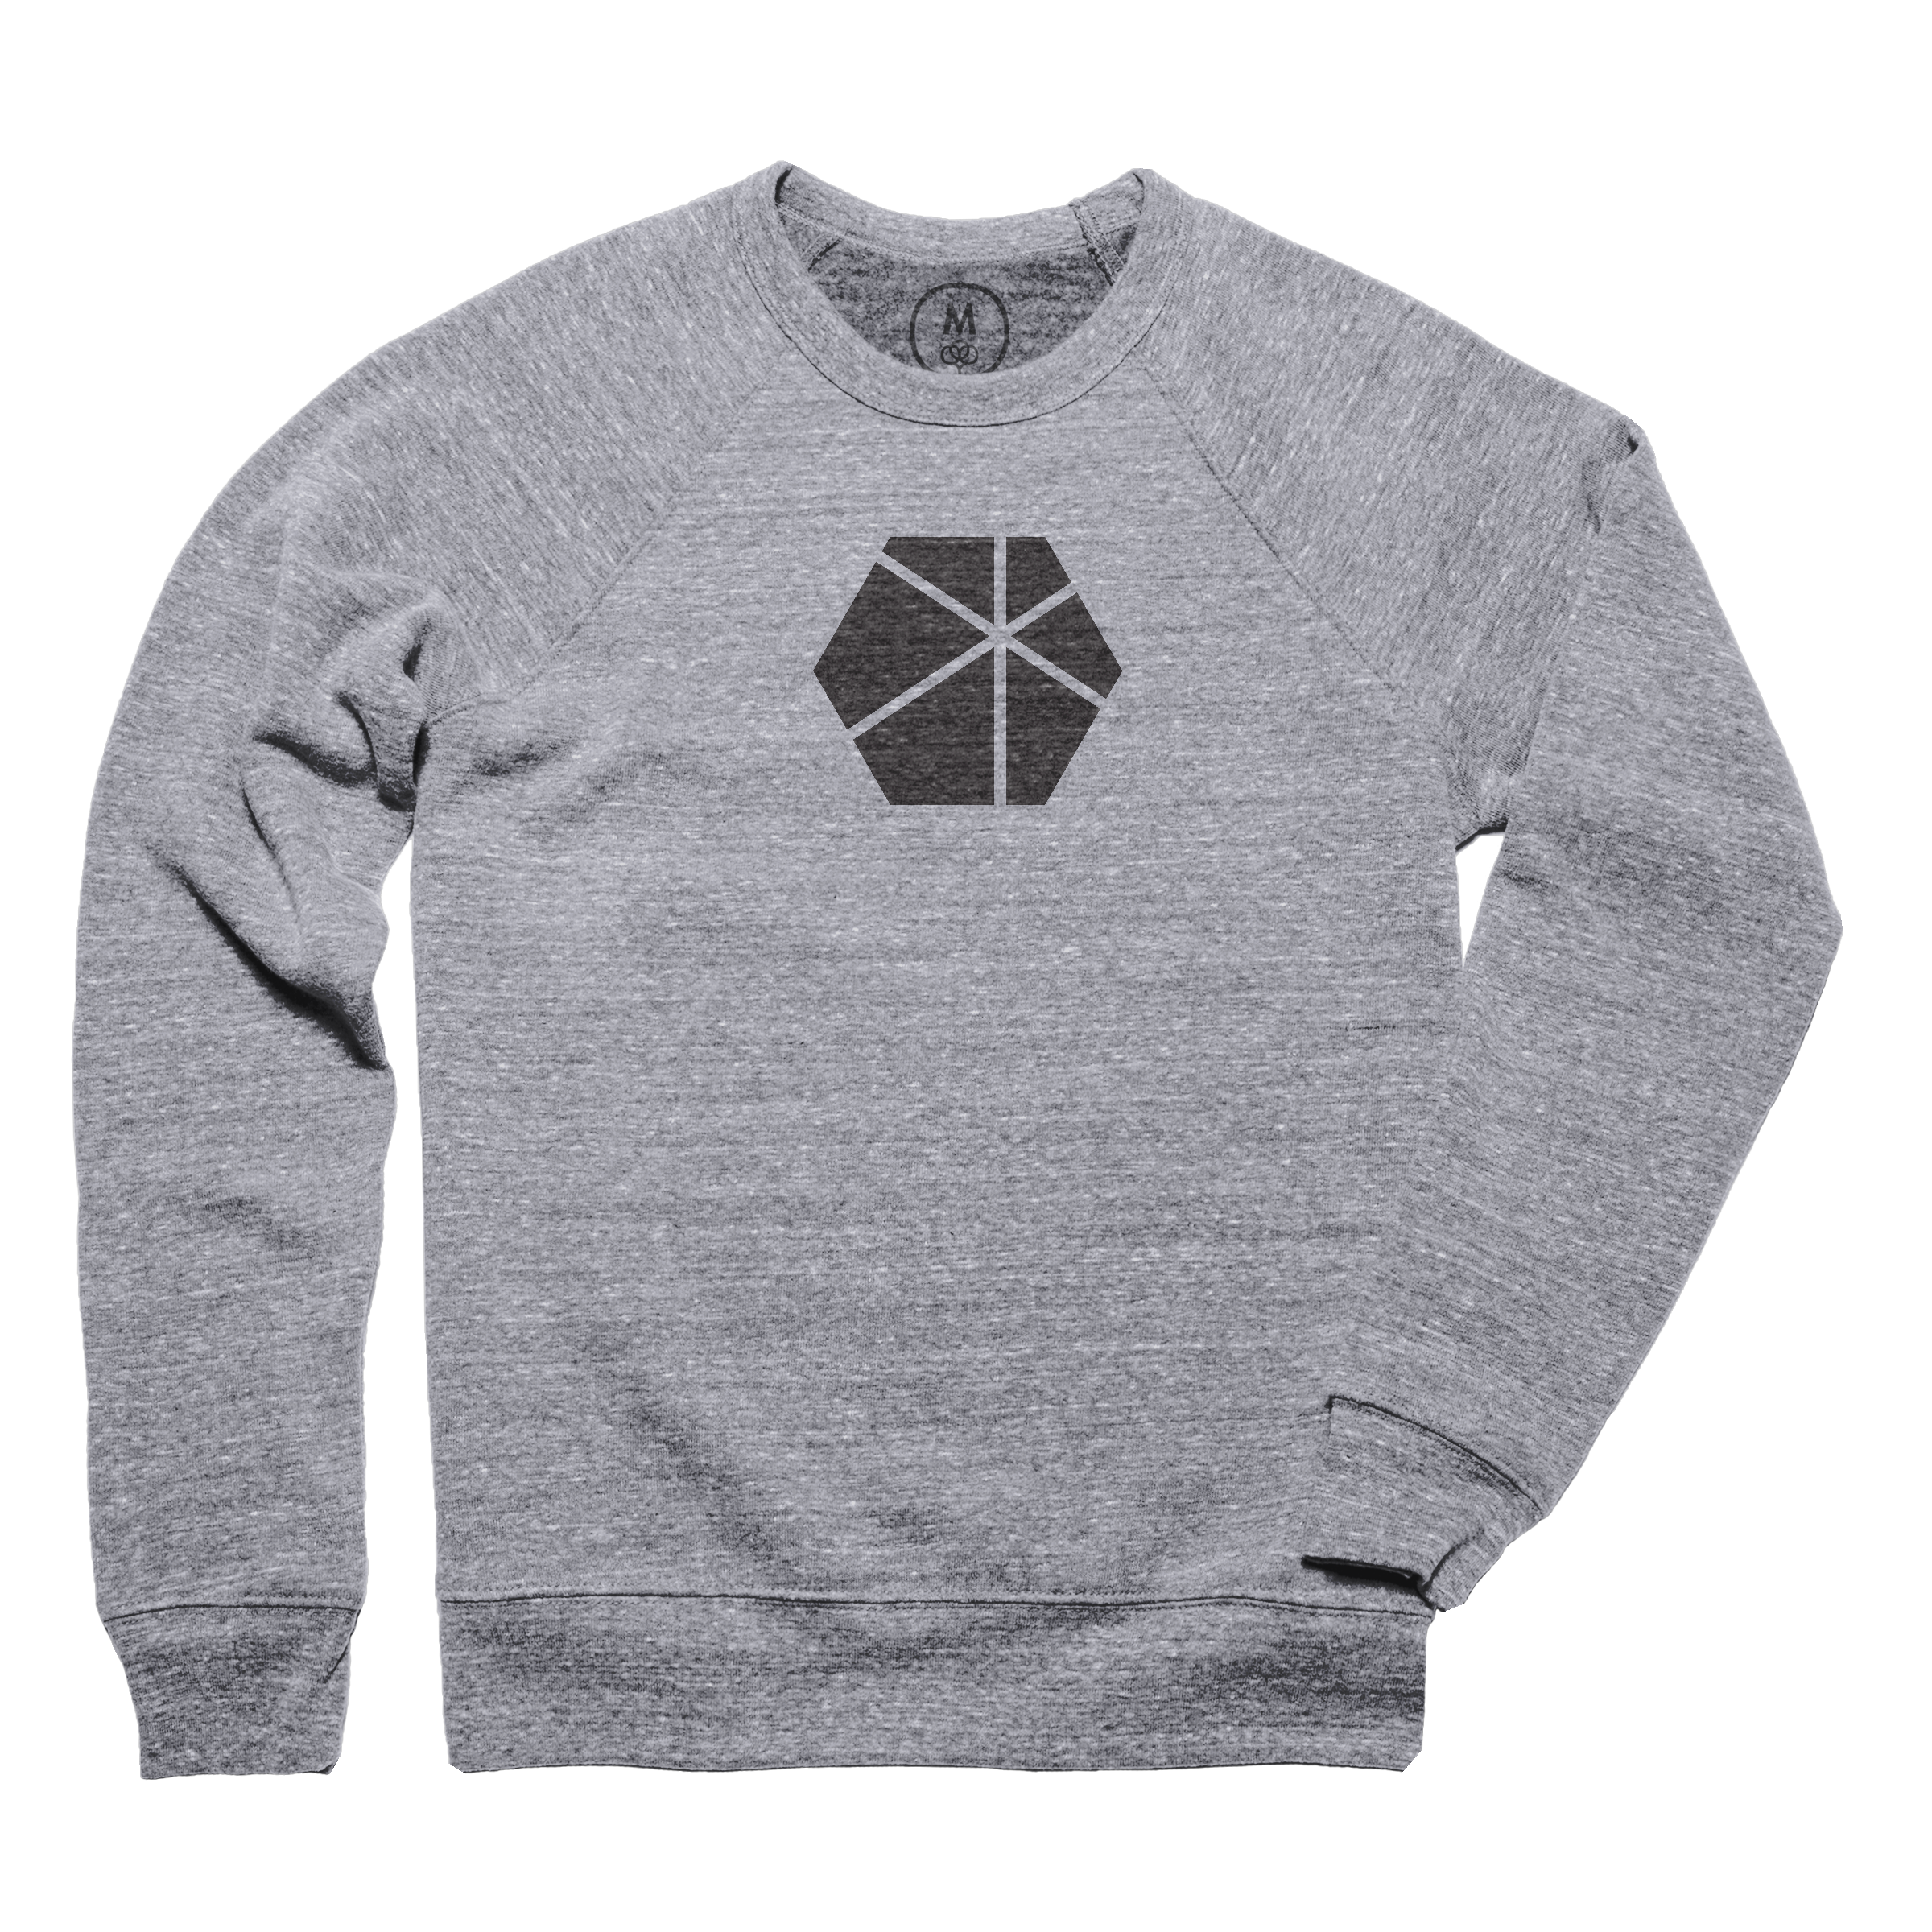 Project Stardust Pullover Crewneck